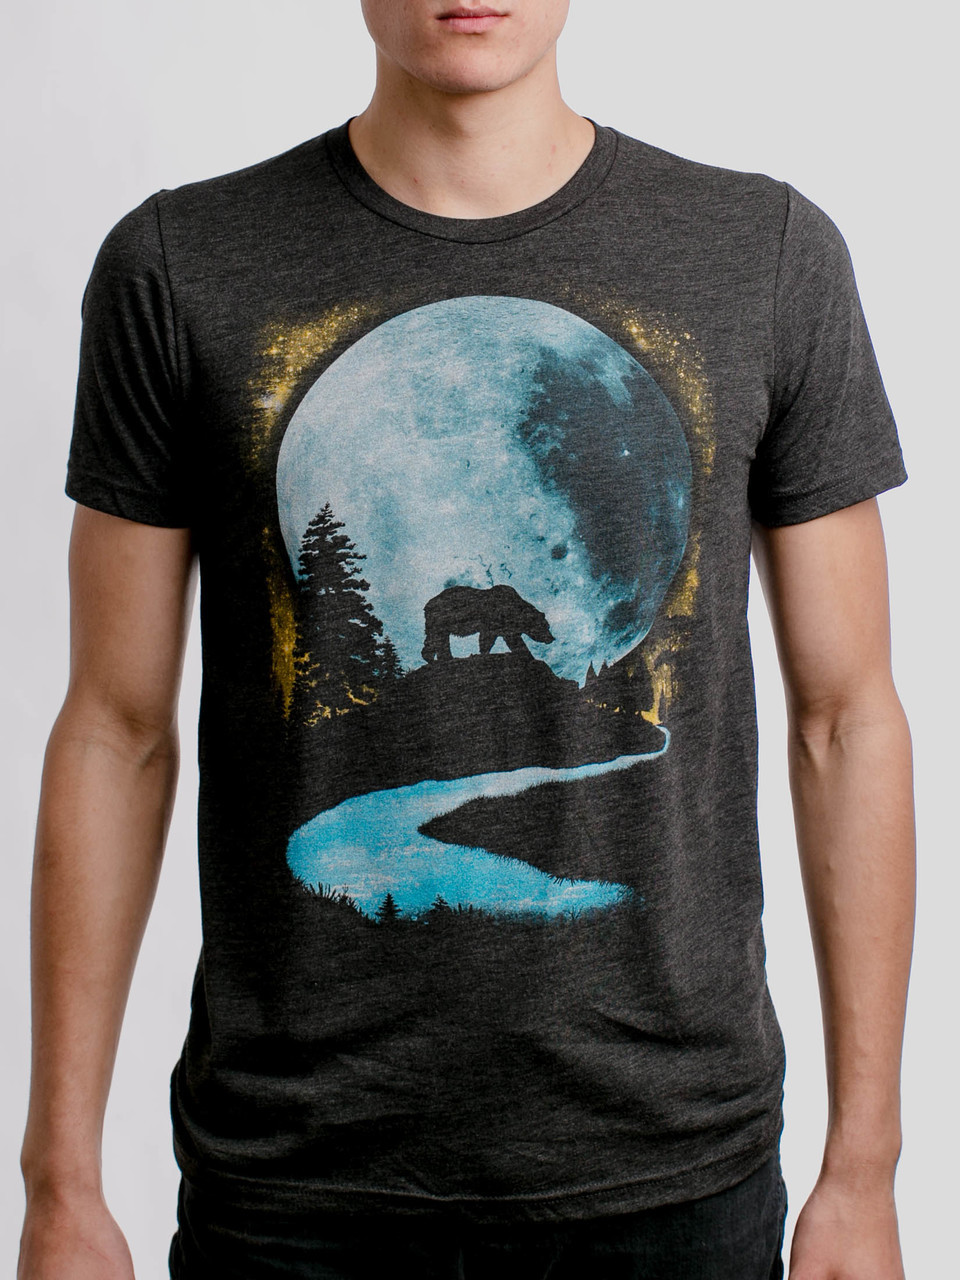 d992c24ab Bear Moon - Multicolor on Heather Black Triblend Mens T Shirt - Curbside  Clothing